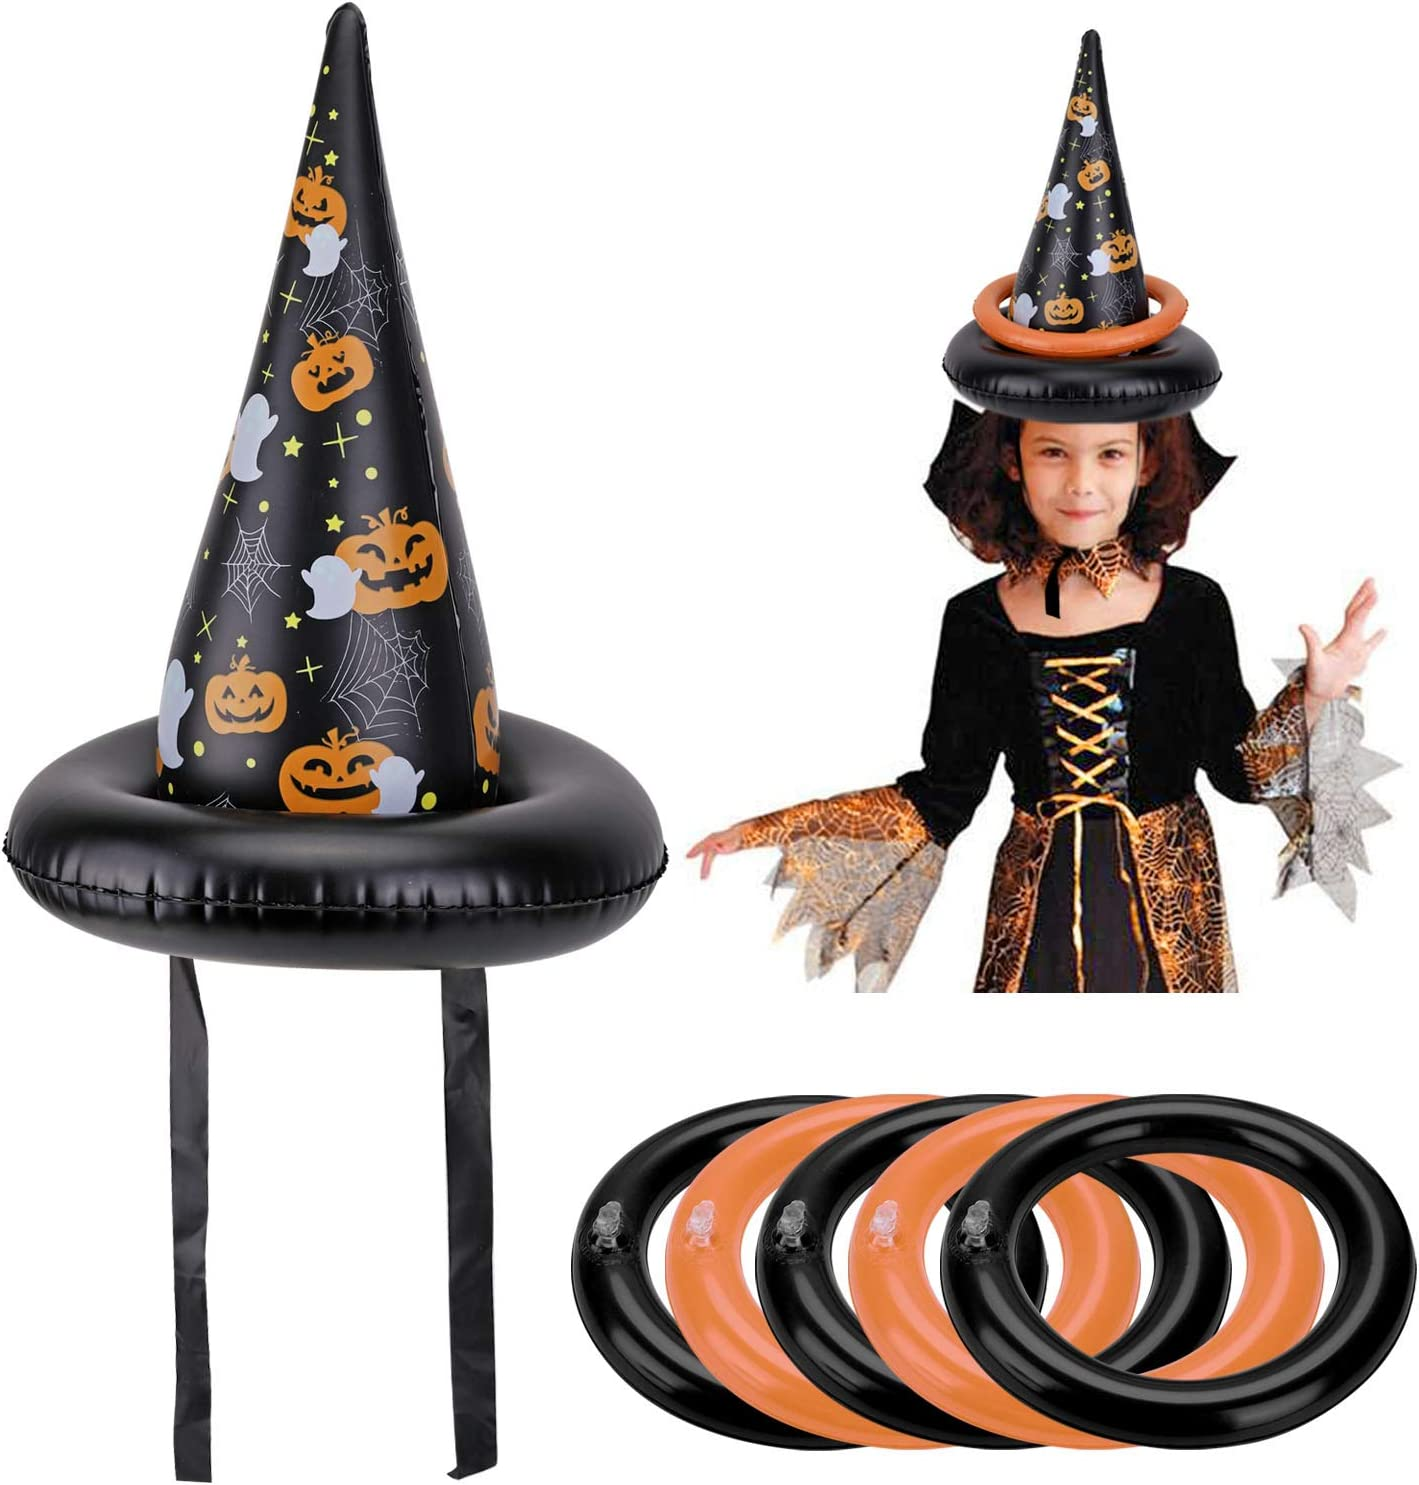 HOWAF Halloween Ring Toss Game 2pcs Inflatable Halloween Witch Hats Ring Toss Game Family Halloween Party Games for Kids Halloween Indoor Outdoor Game Garden Toys Kids Halloween Party Supplies